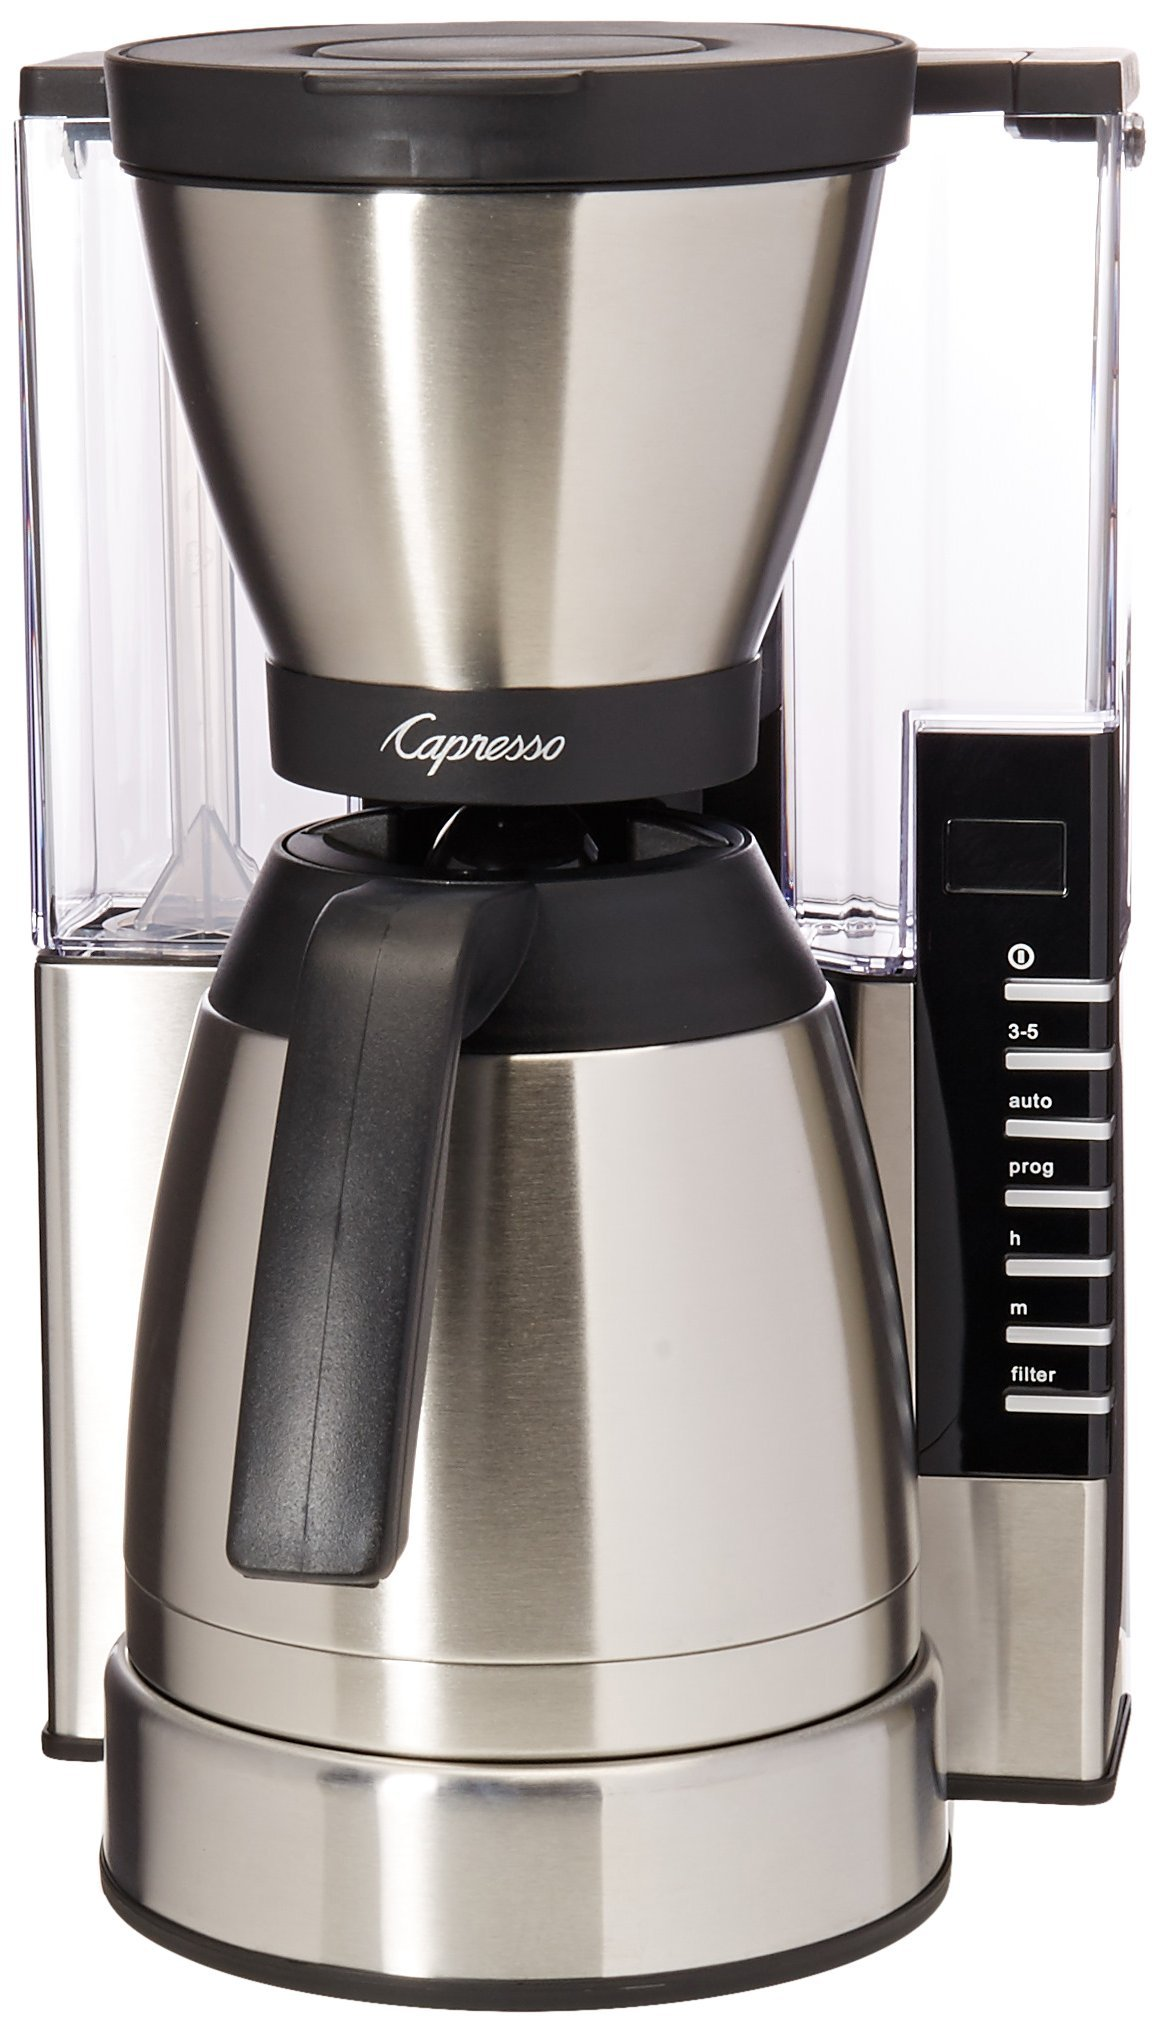 Capresso 498.05 MT900 Rapid Brew Herbcicle Plus, Stainless Steel by Capresso